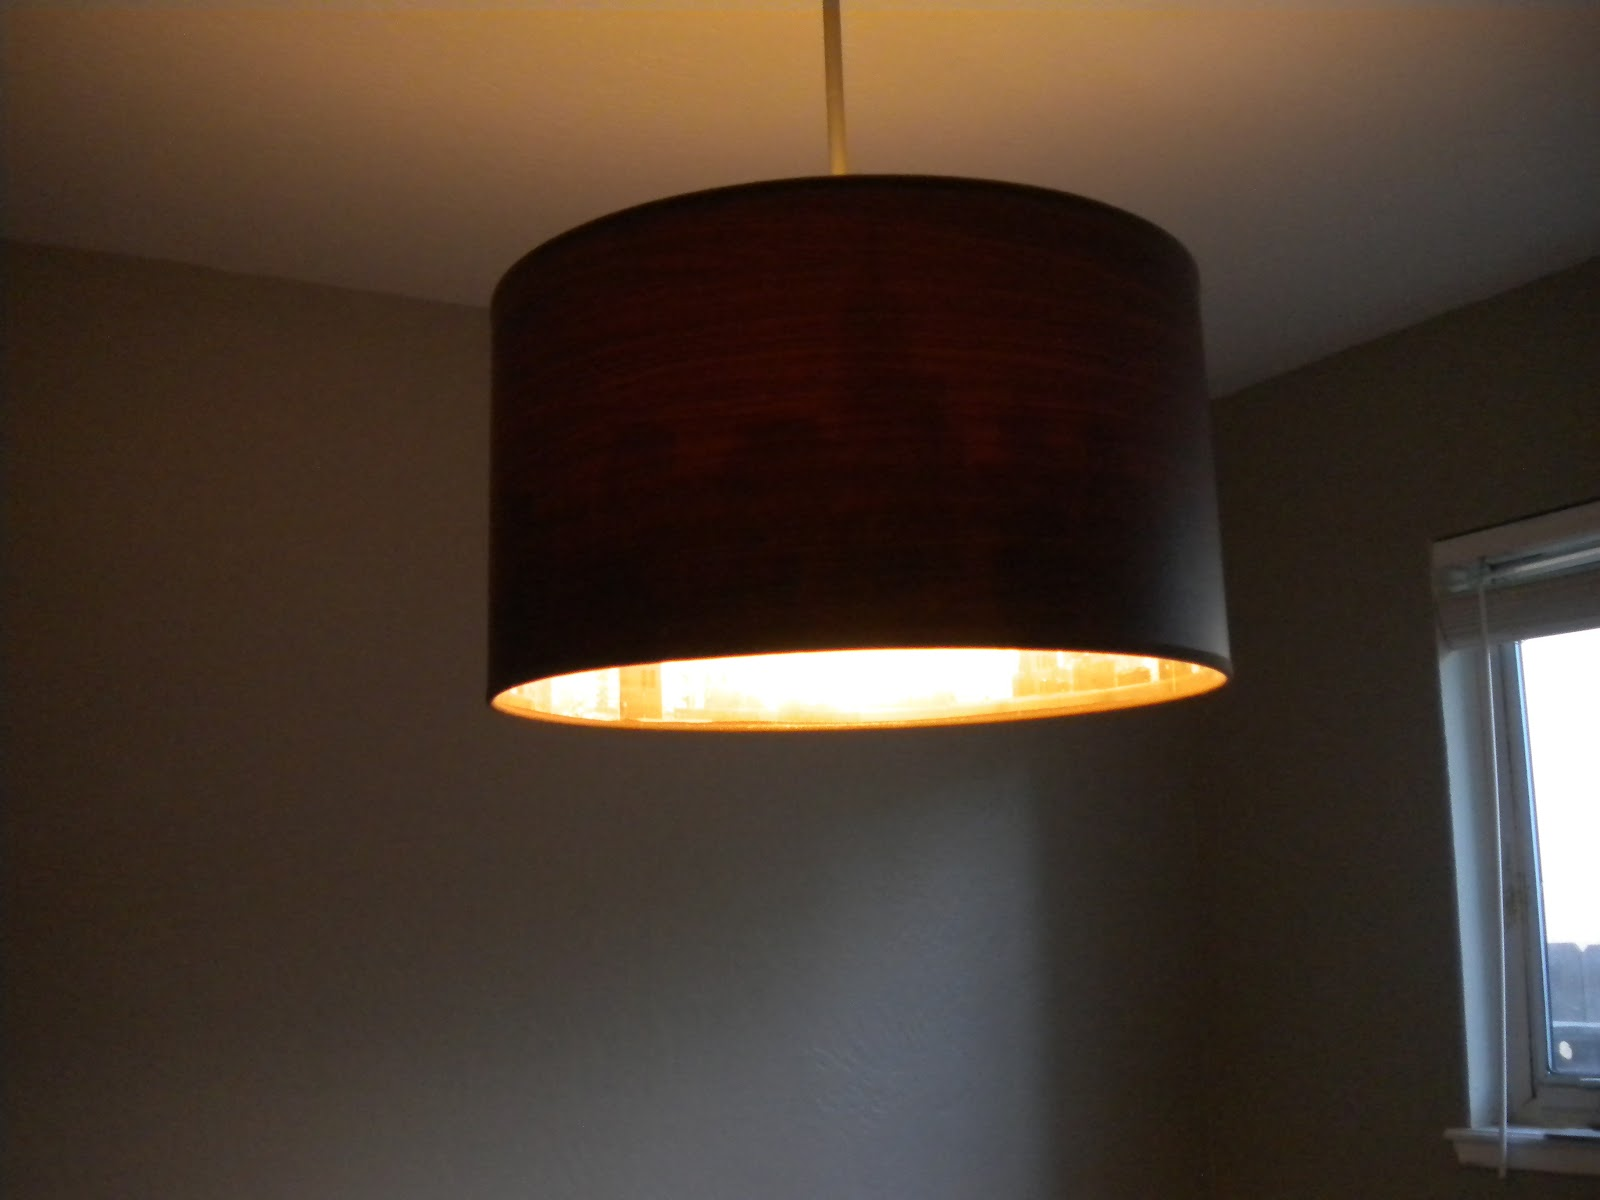 Sons Tween Room: Light the Room in Style - Home Depot Center